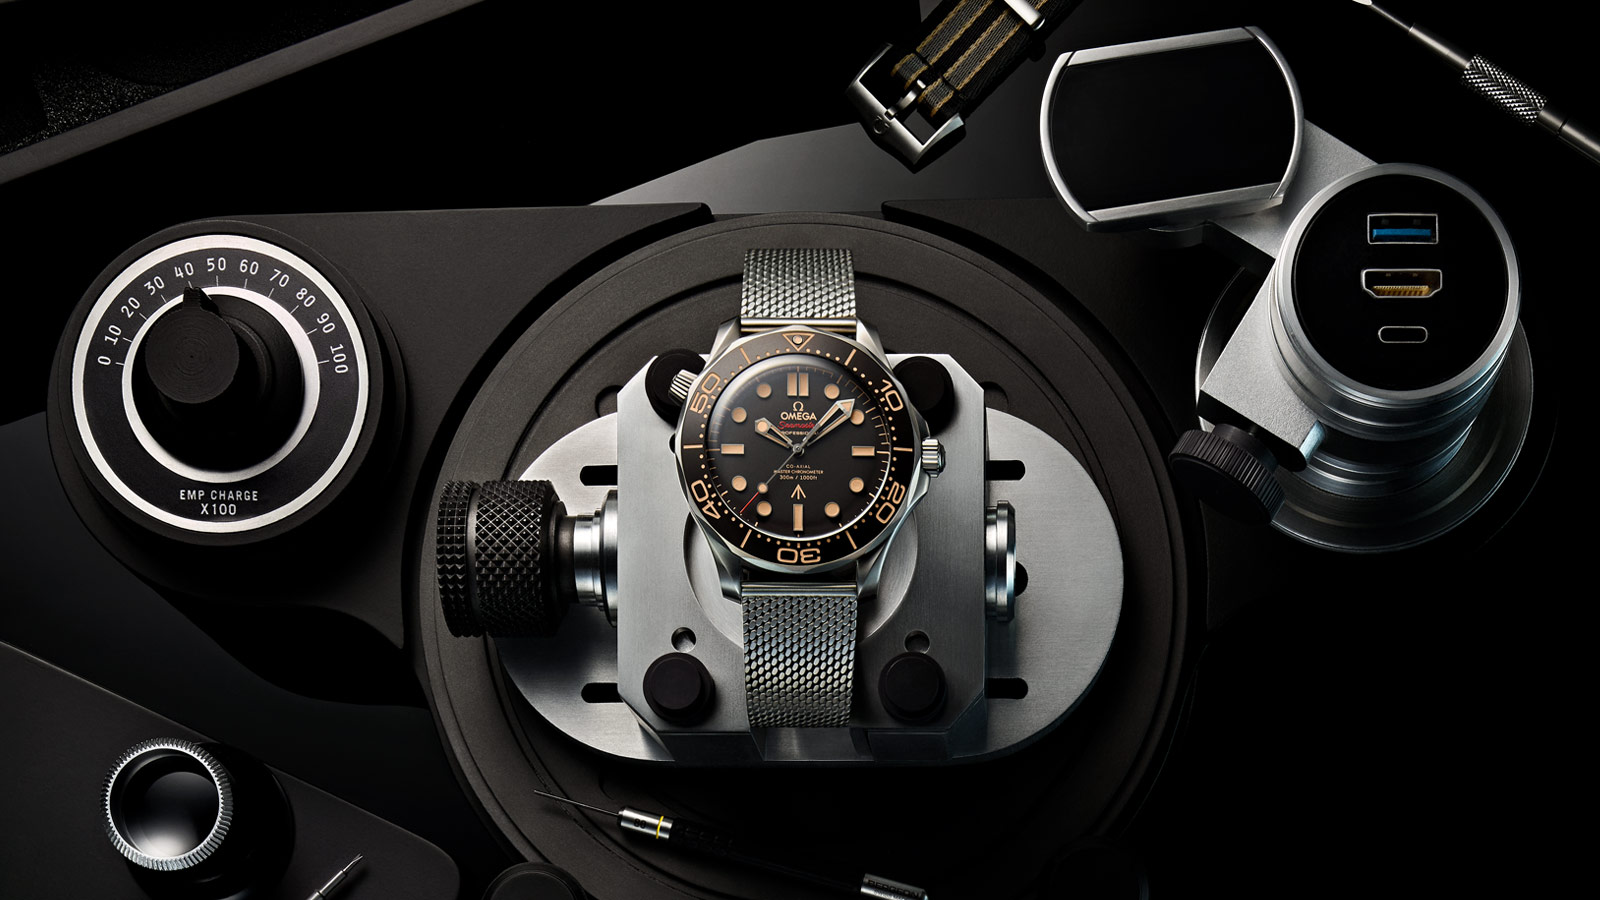 Seamaster Diver 300 M Diver 300M Omega Co‑Axial Master Chronometer 42 mm - 210.90.42.20.01.001 - Anzeigen 1